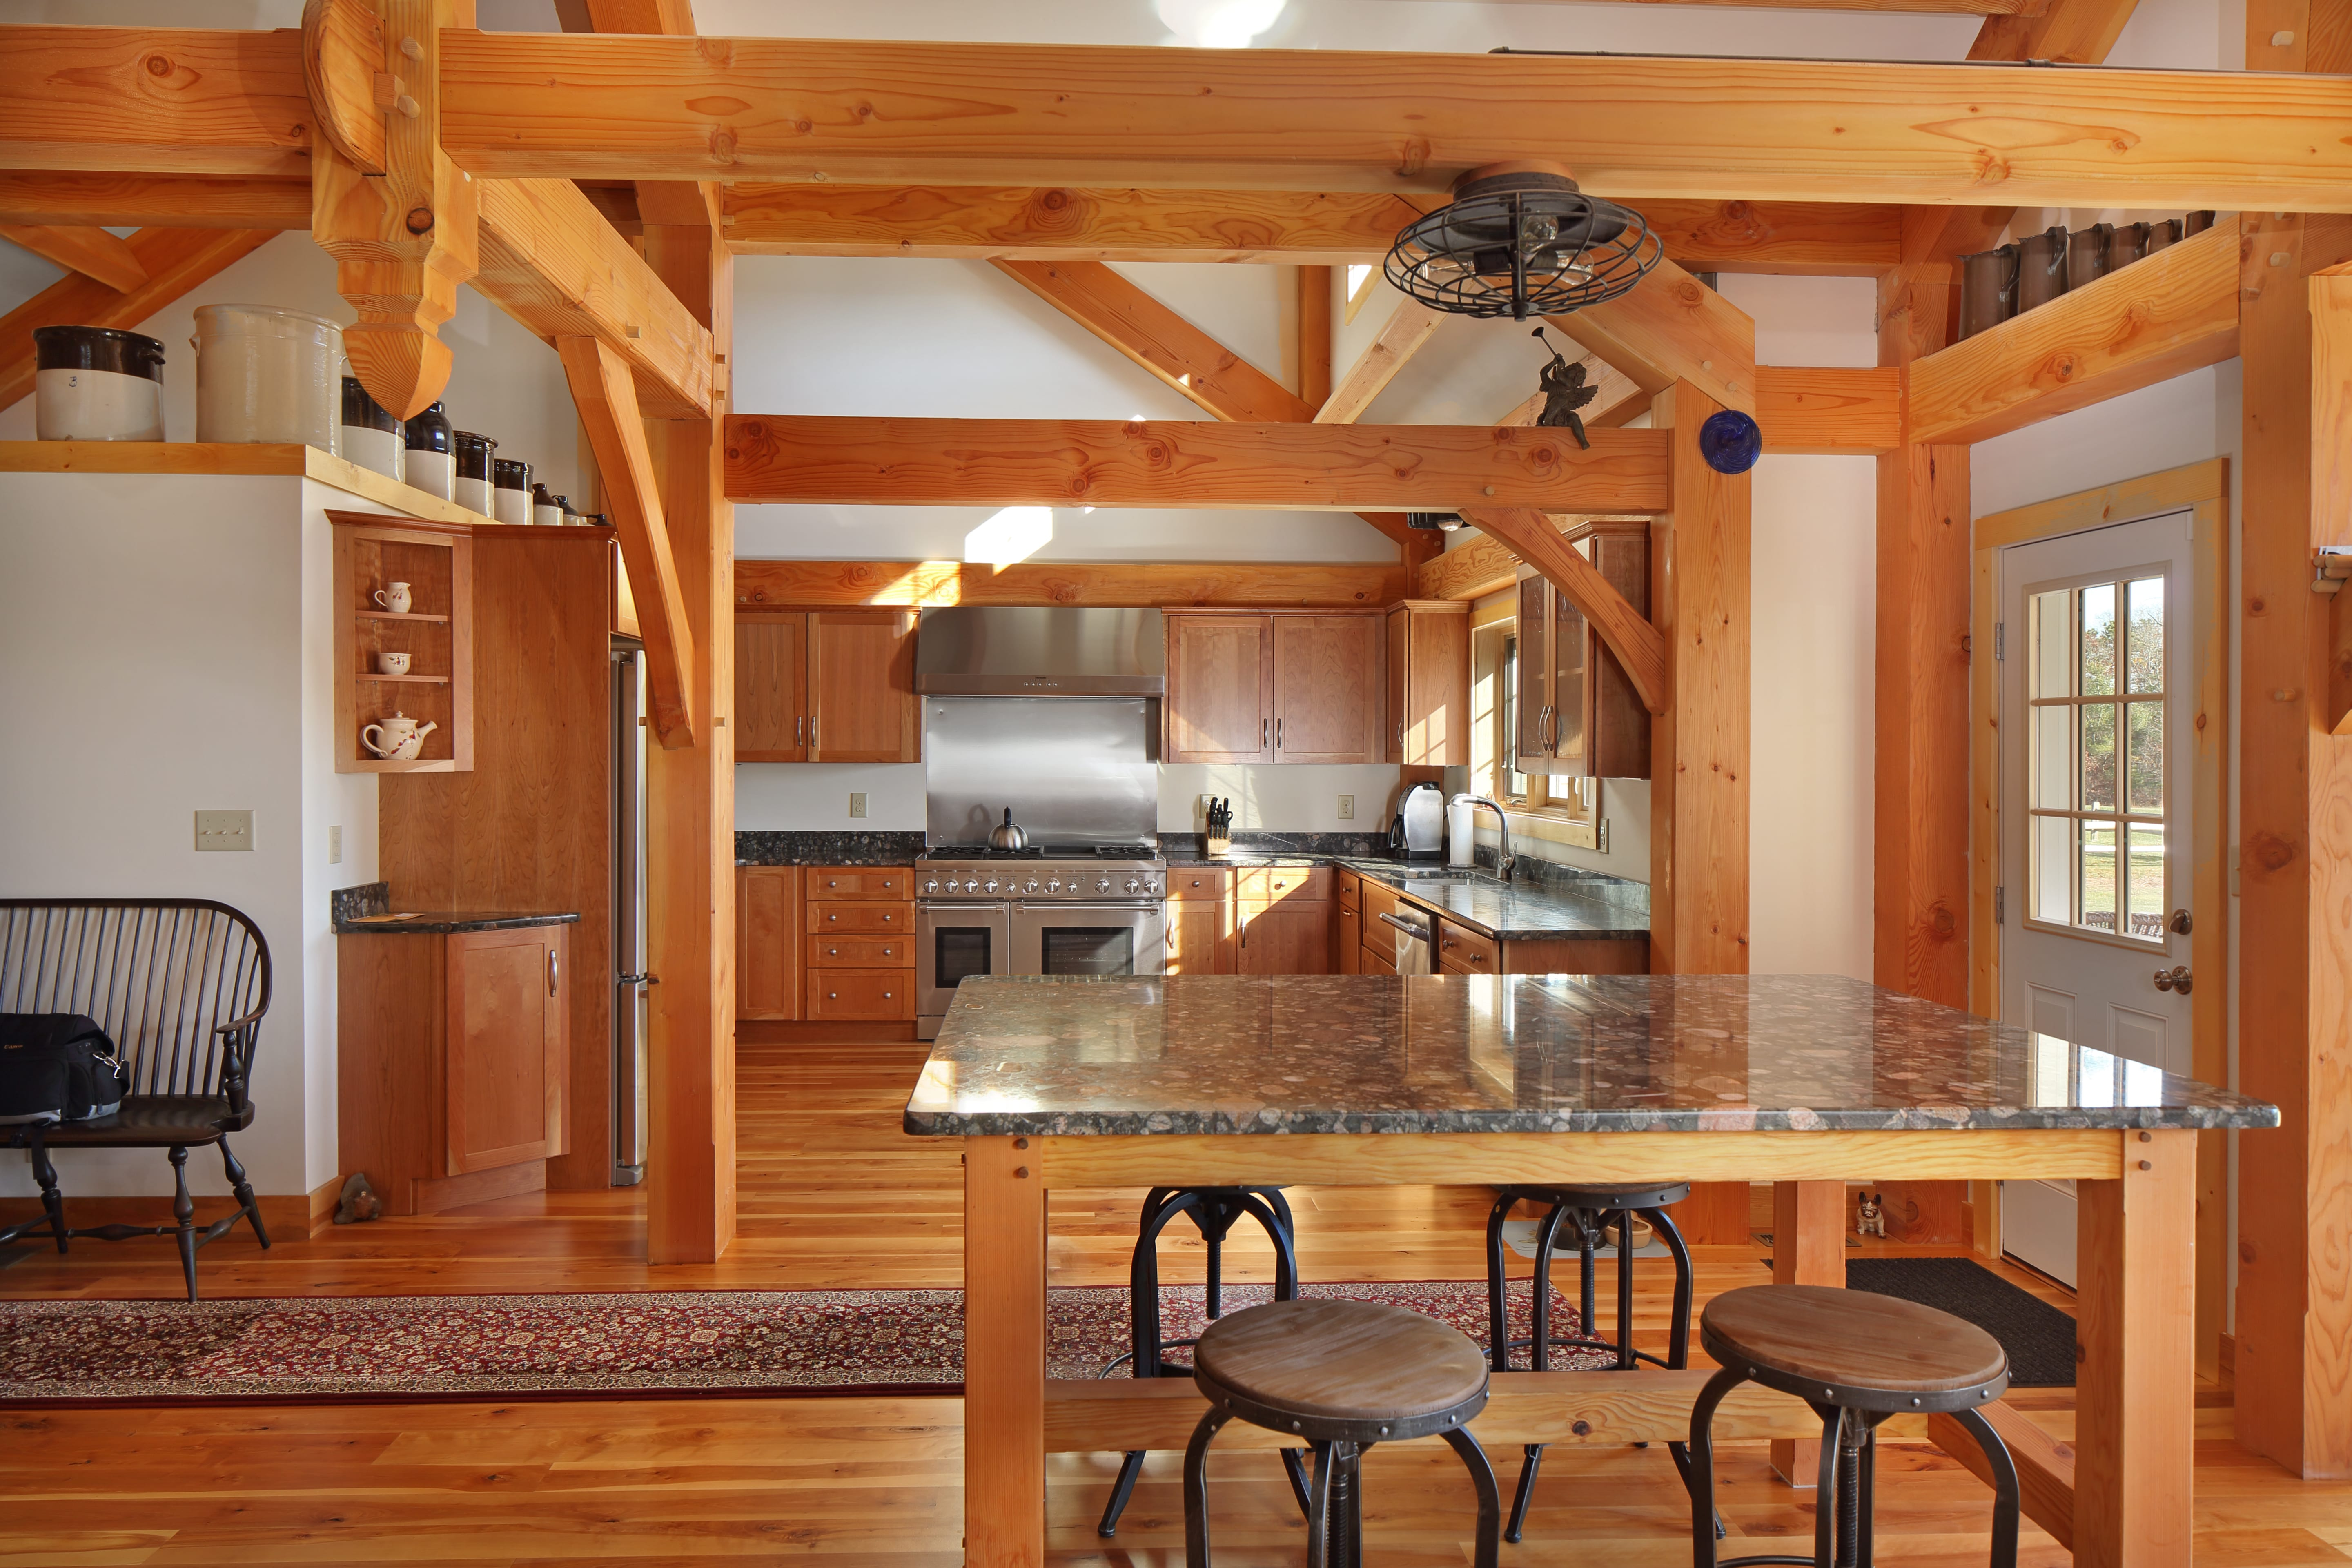 Hardwick Post and Beam Cape Cod kitchen